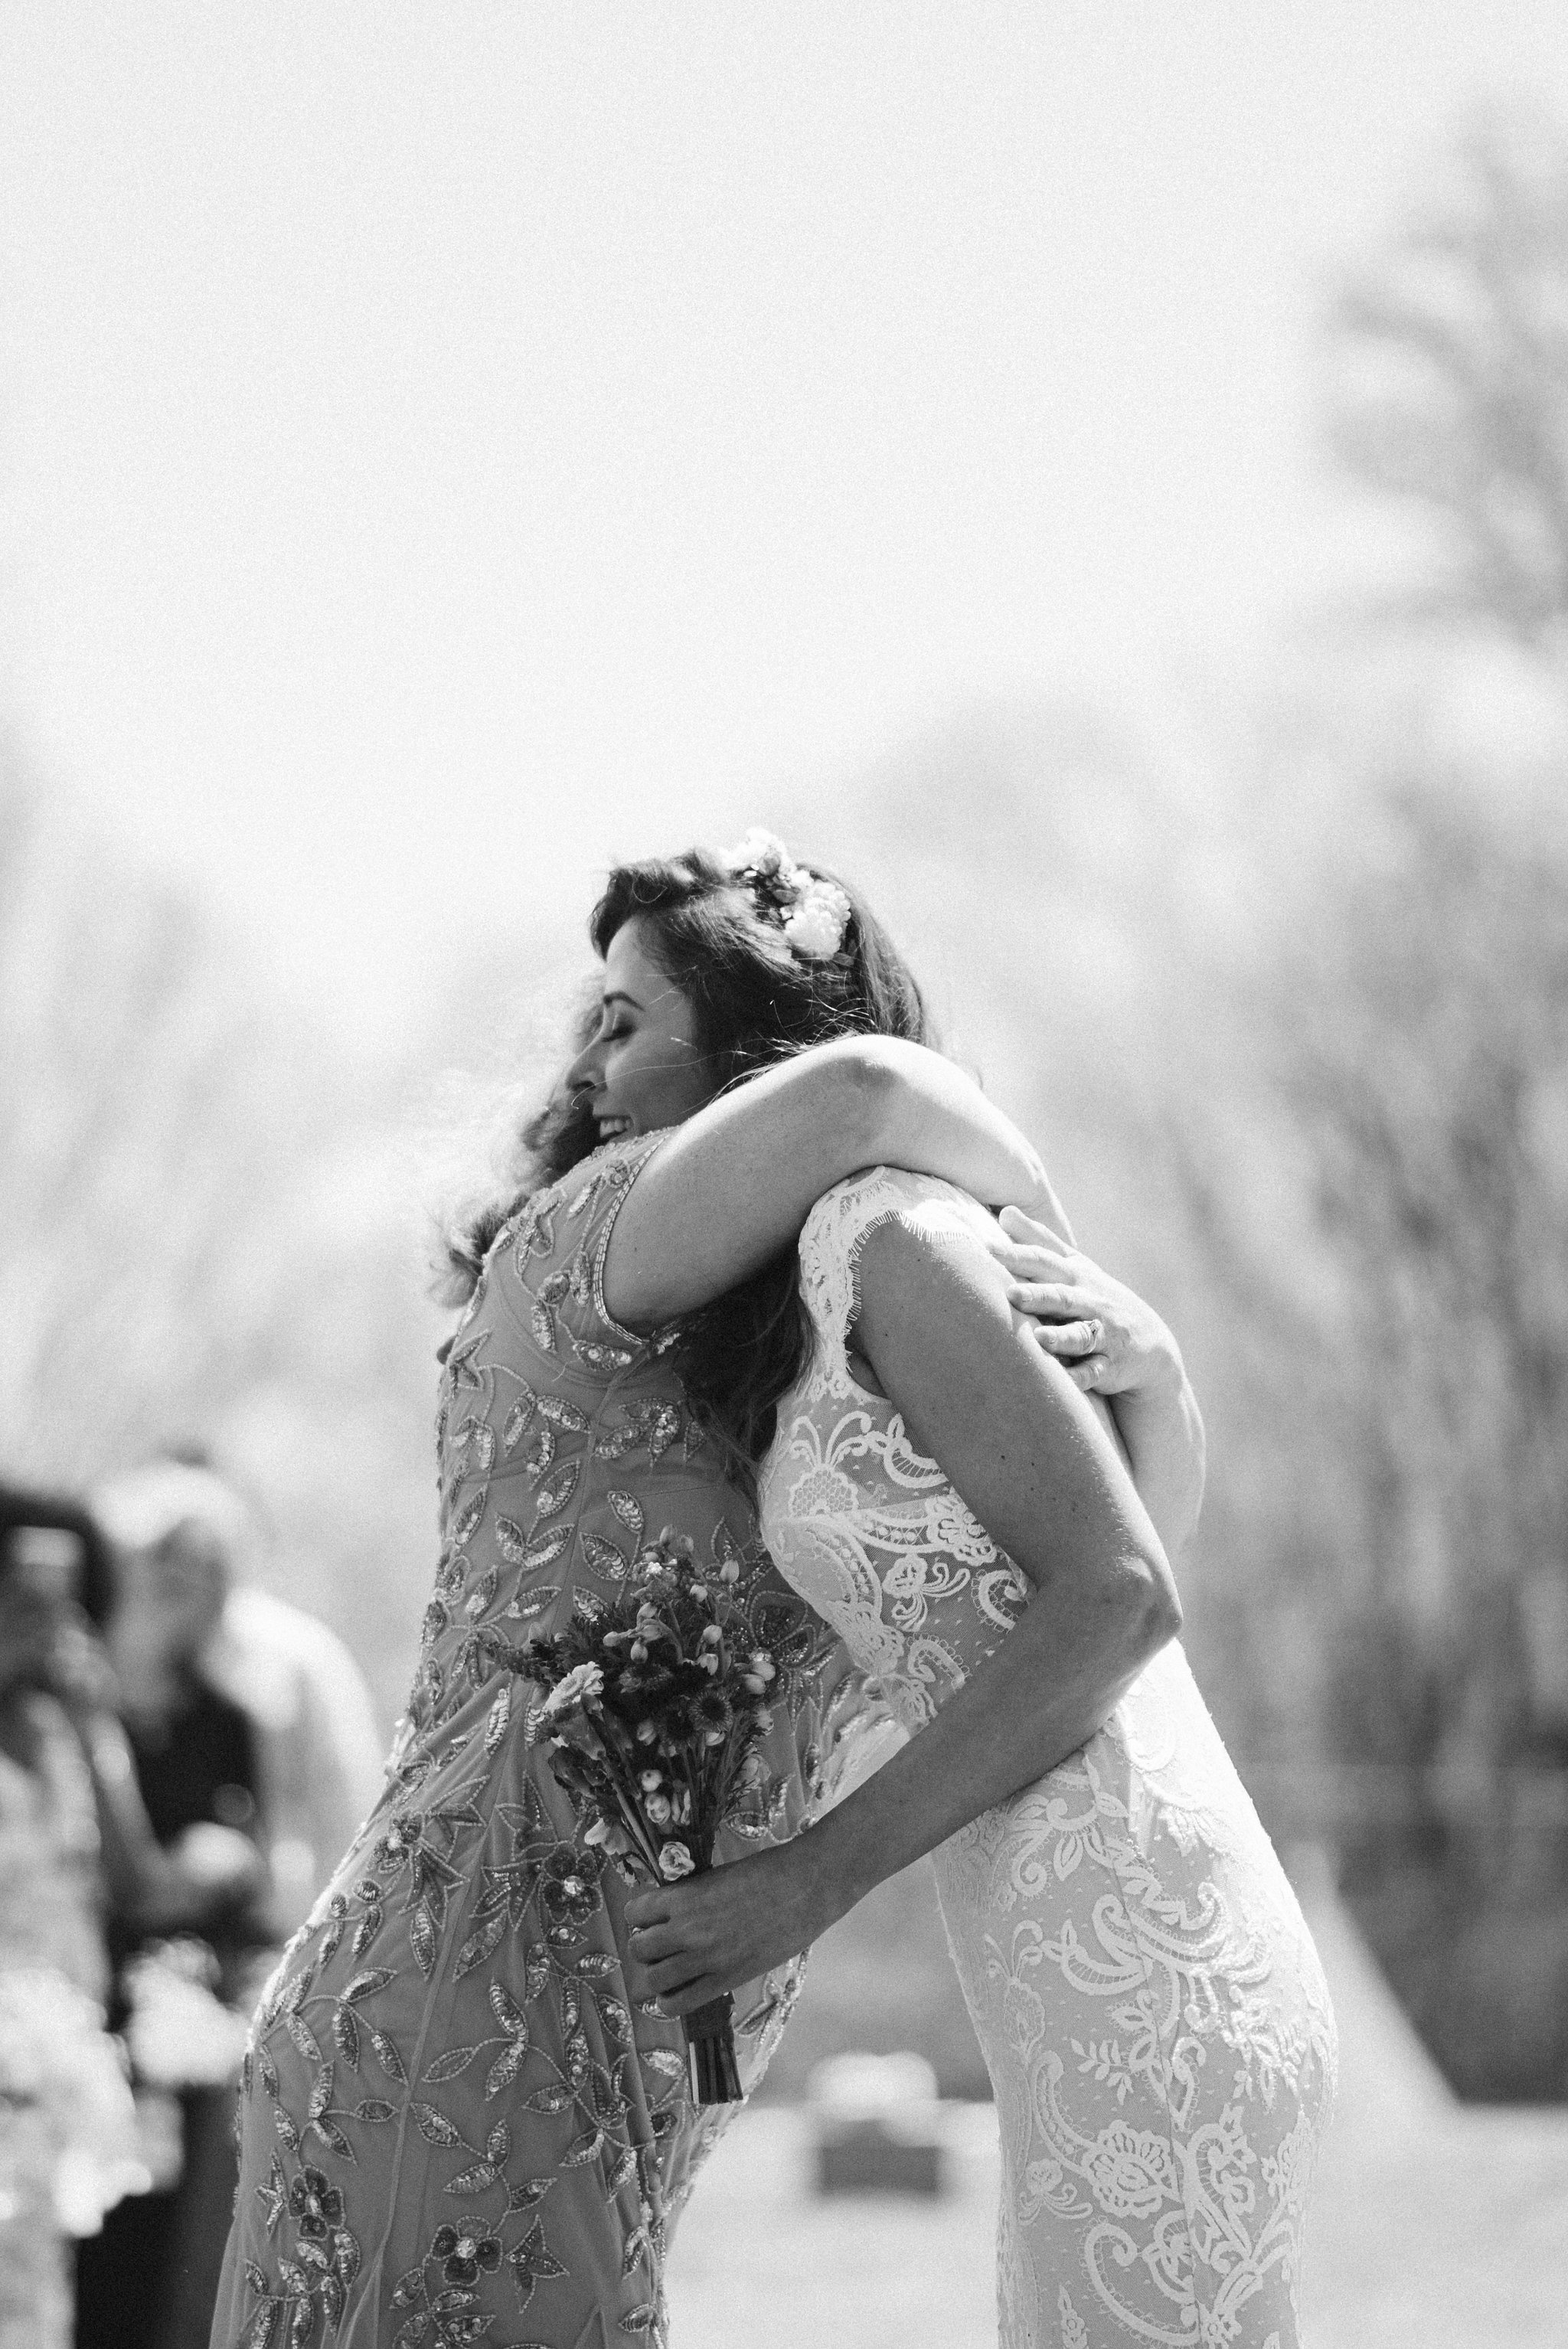 Spring Outdoor Wedding, Park, Baltimore Wedding Photographer, DIY, Classic, Upcycled, Garden Party, Romantic, Bride Hugging Mother in Law, BHLDN Wedding Dress, Flower Crown, Black and White Photo